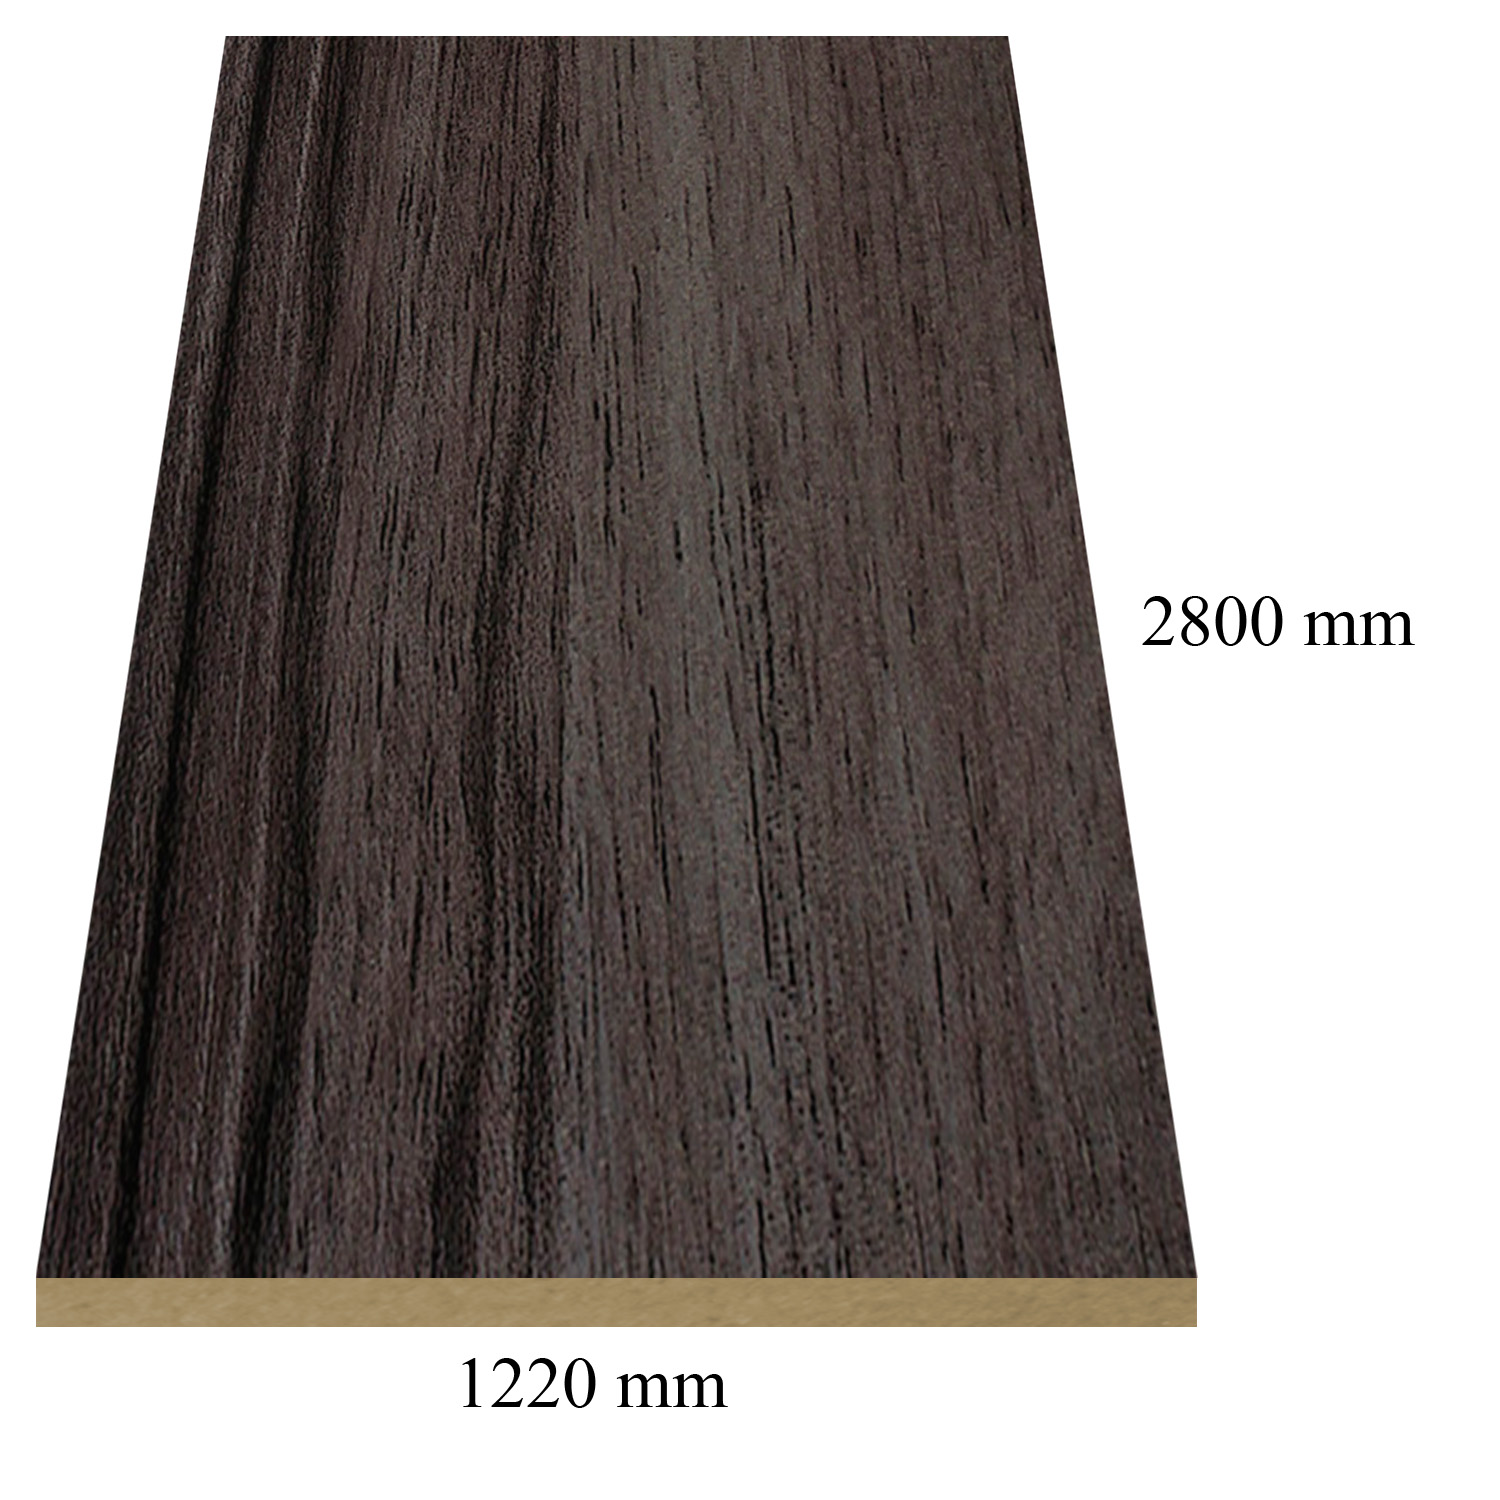 Y49 Imperia gloss - PVC coated 18 mm MDF У49